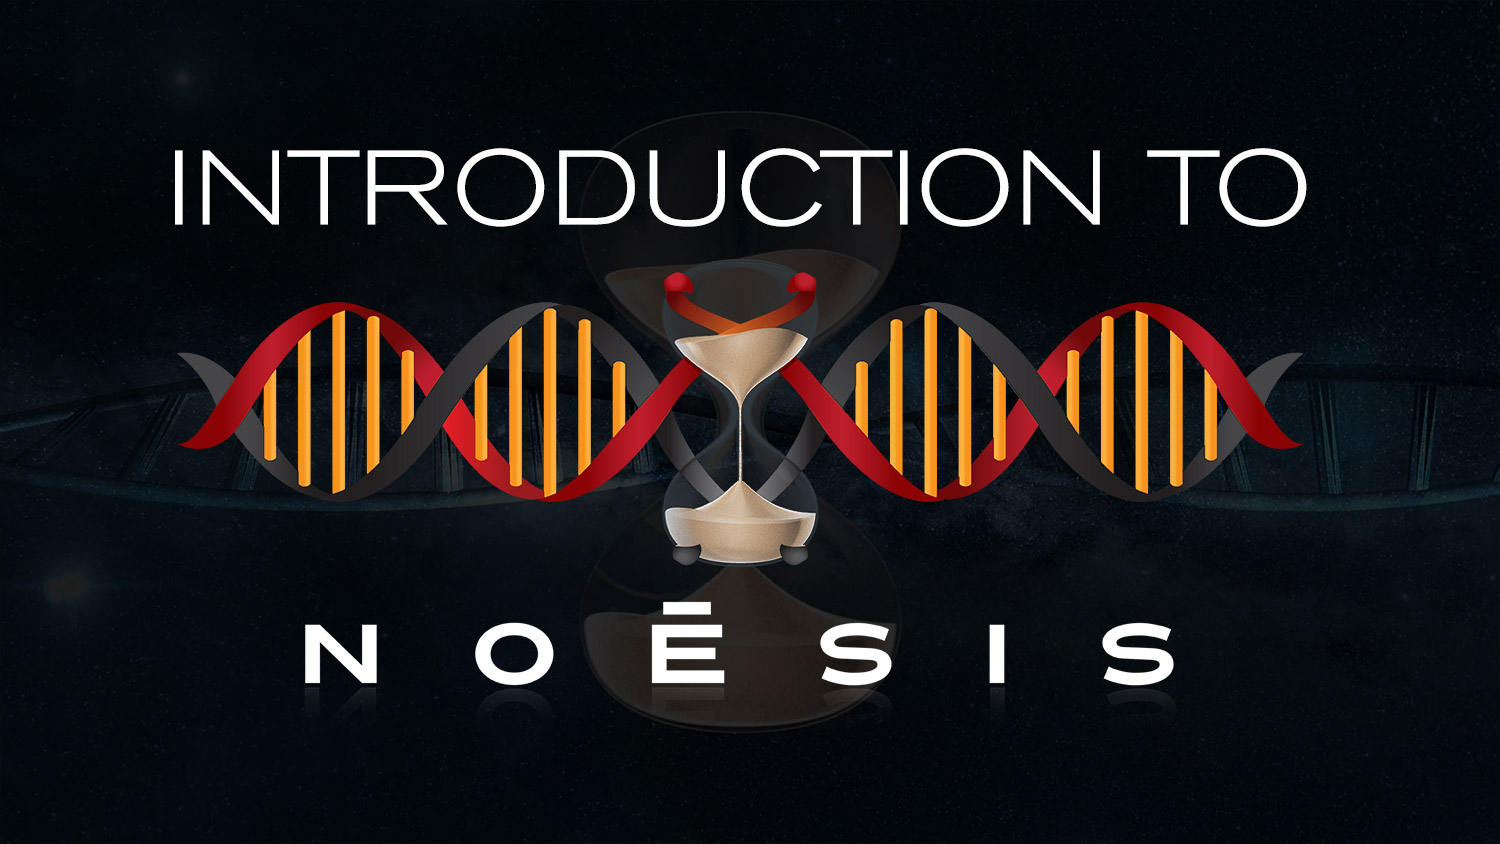 introduction to noesis